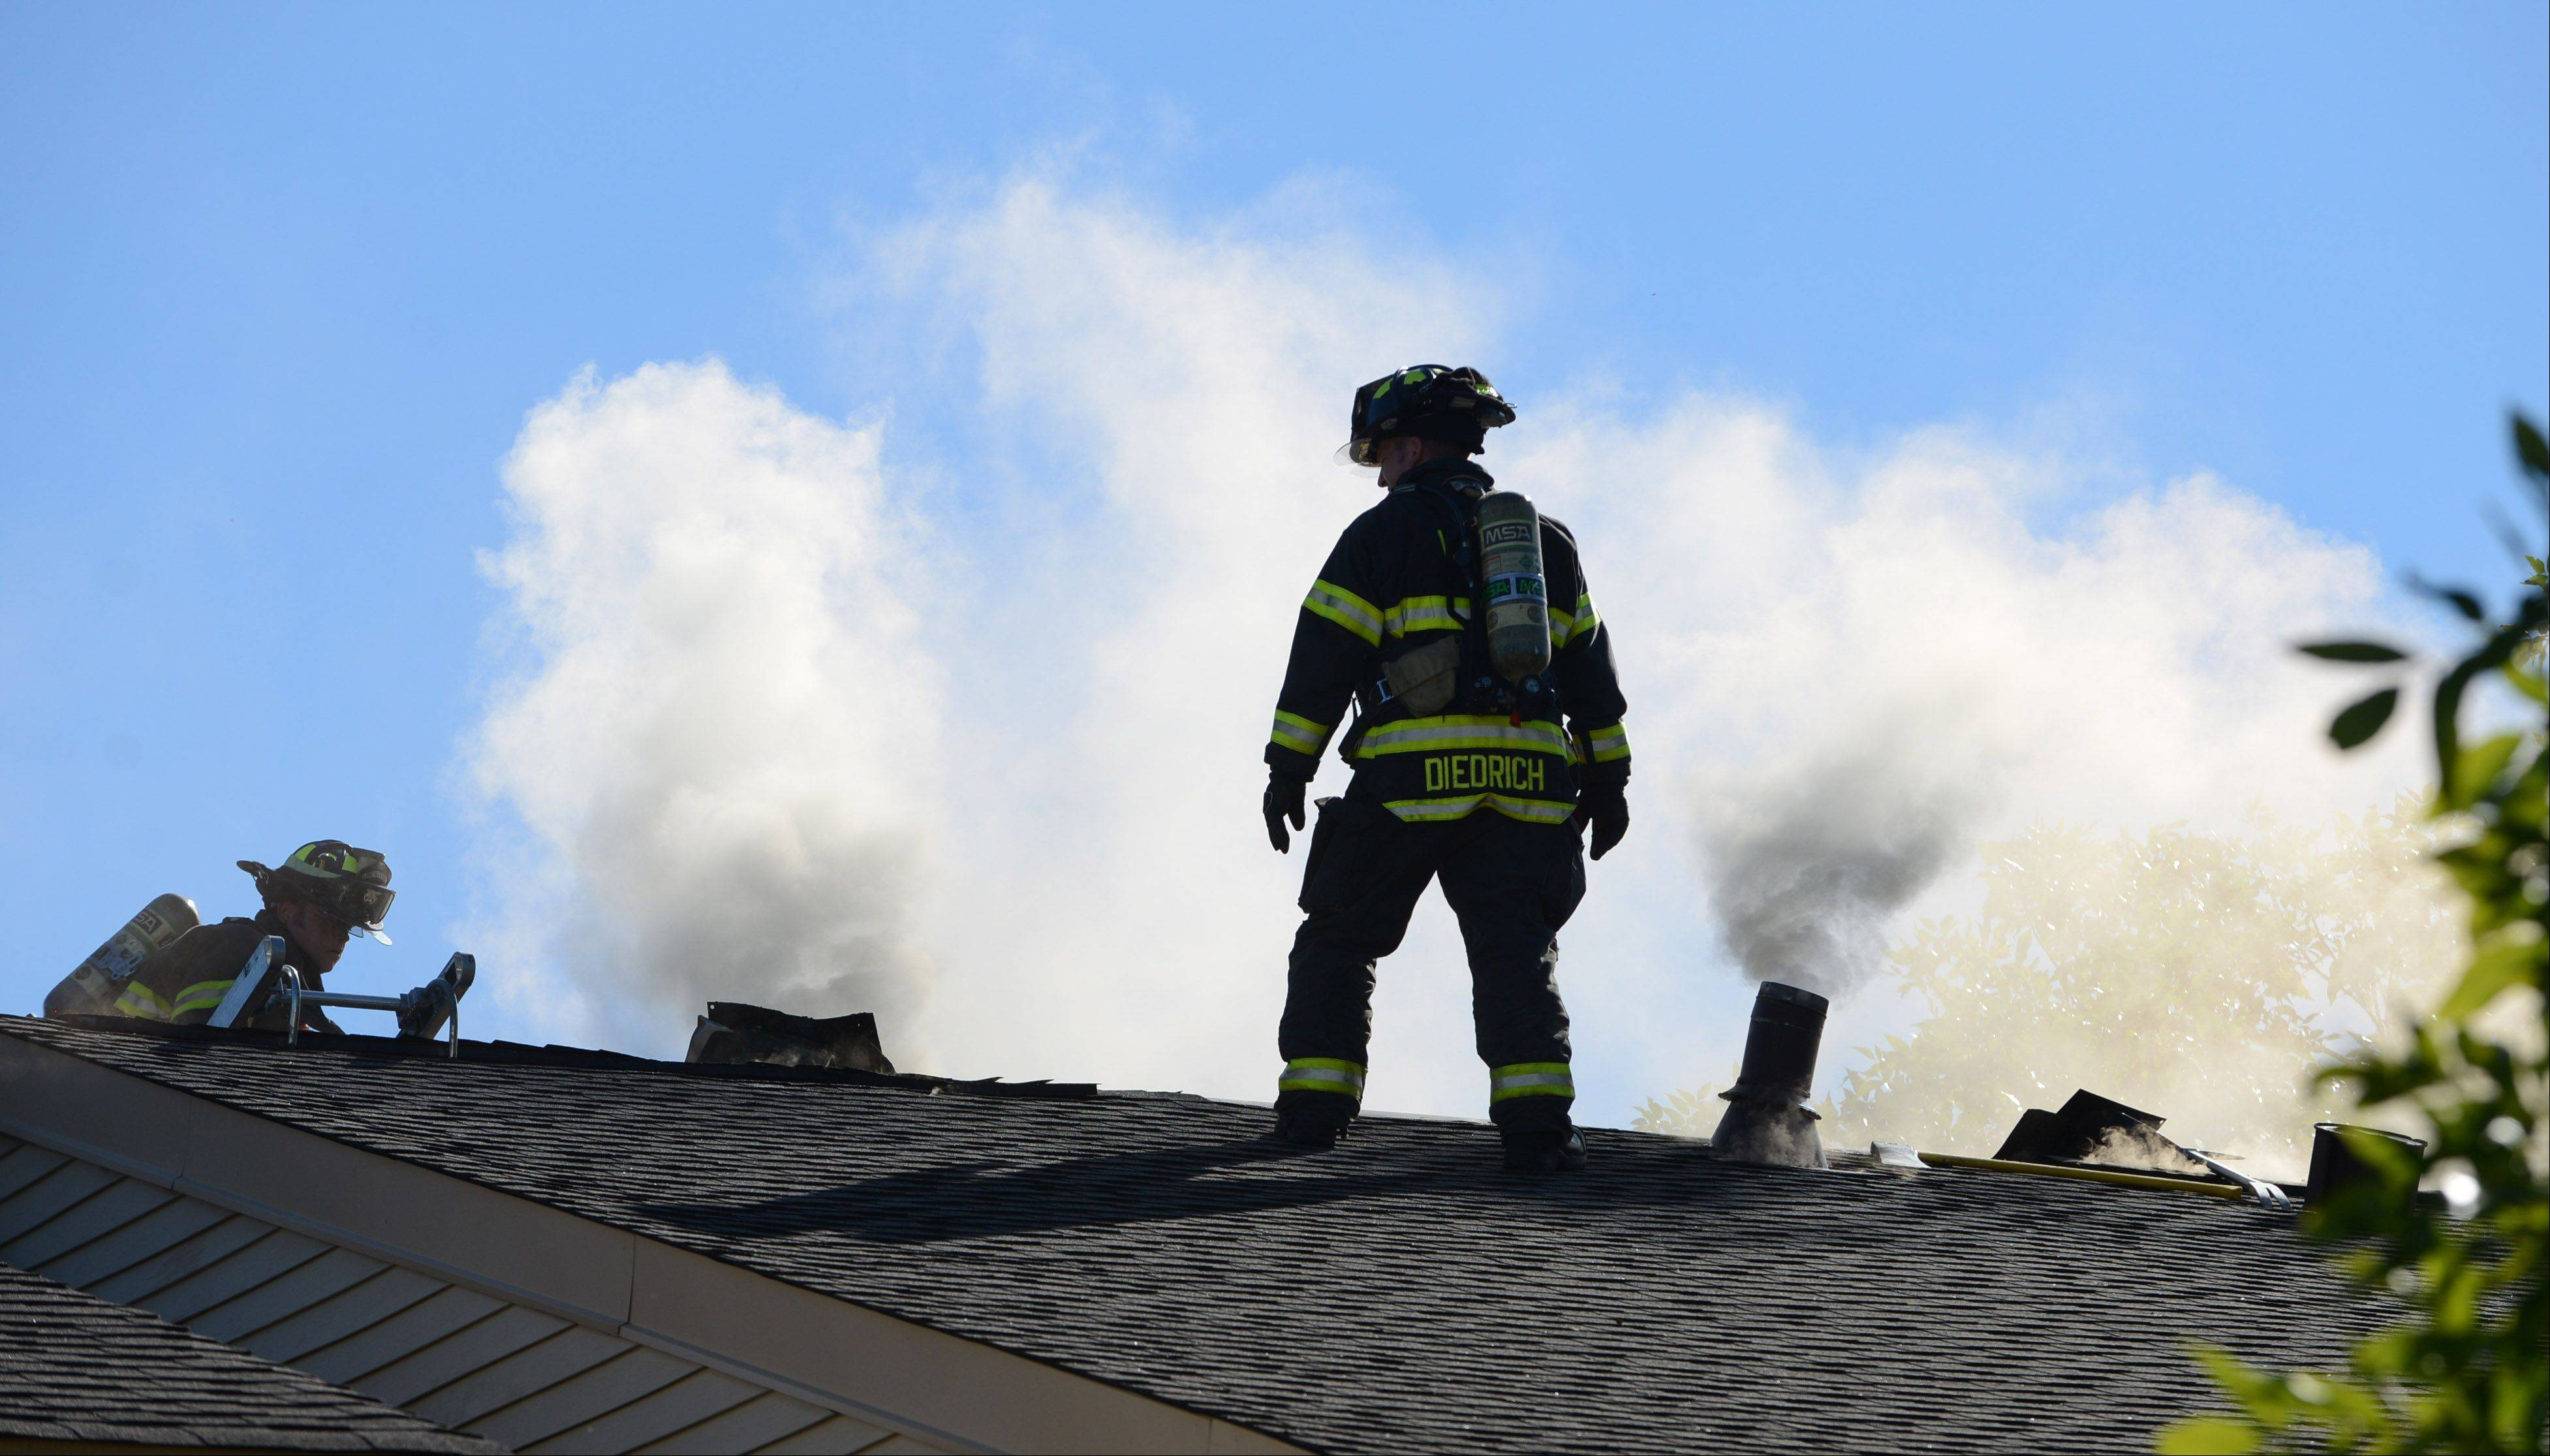 Fire officials respond to a fire on the second floor of a multifamily structure on Commonwealth Court in Vernon Hills Thursday afternoon. Officials report a police officer was injured but the extent of his injuries are not available.